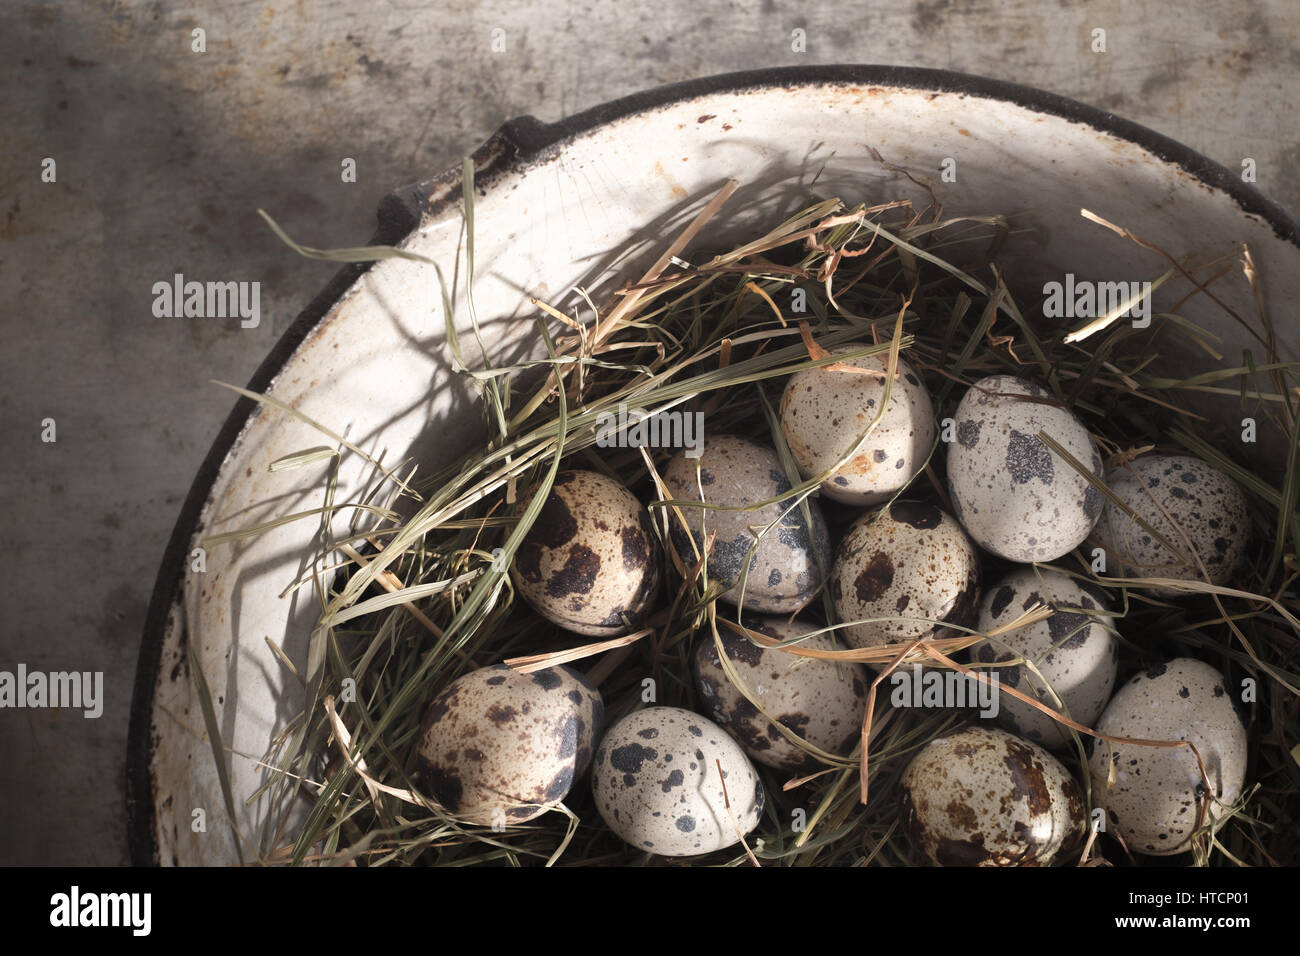 Quail eggs laid on hay - from above - Stock Image